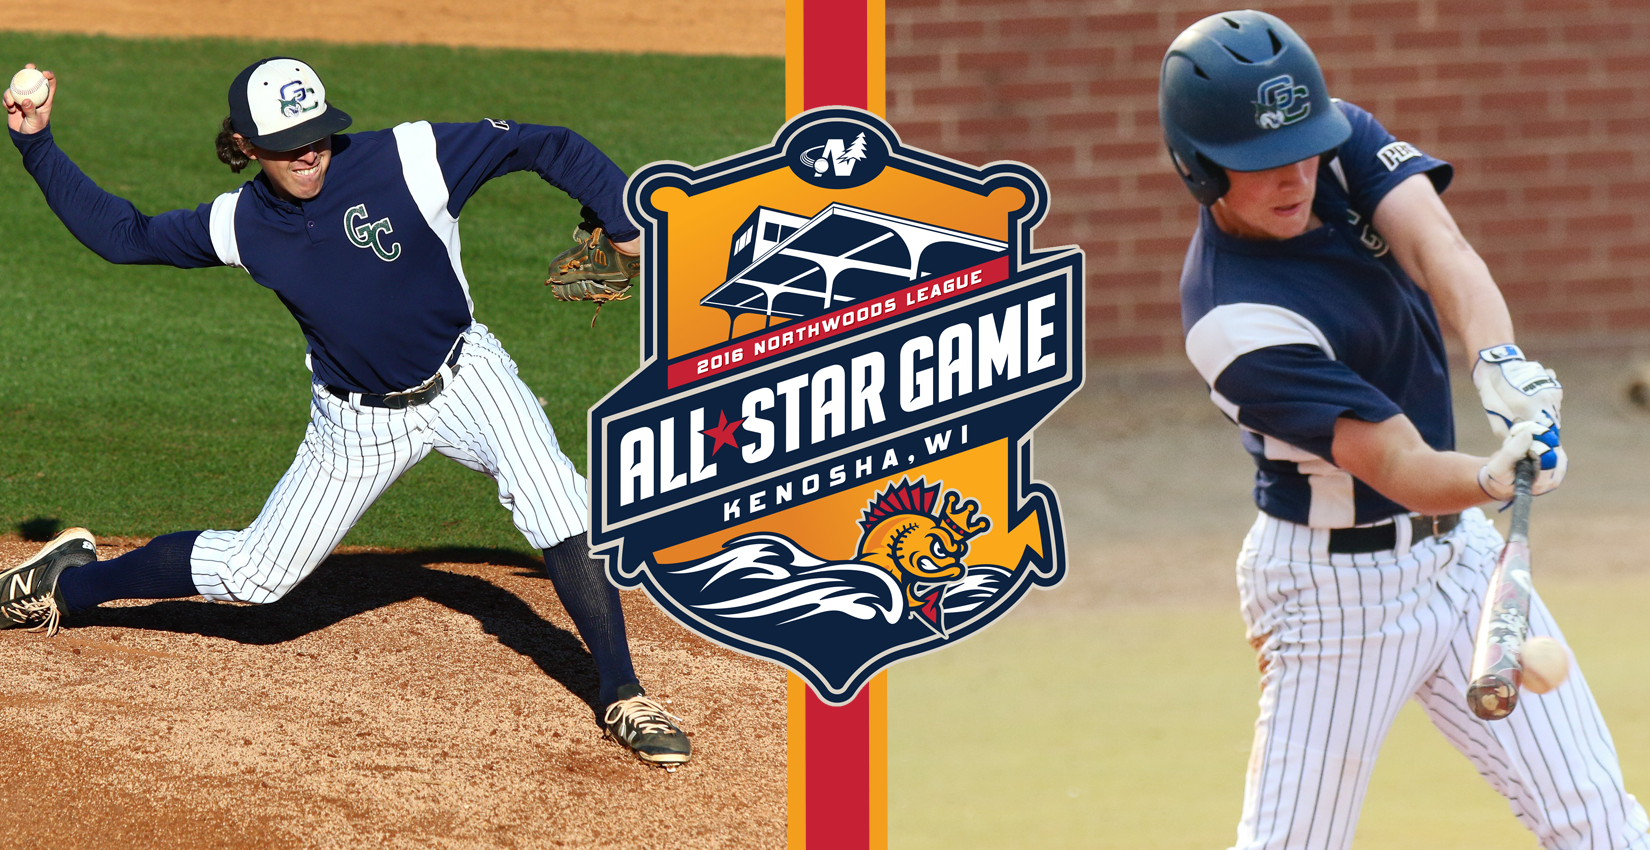 Mattix, Busby Named to Northwoods All-Star Team